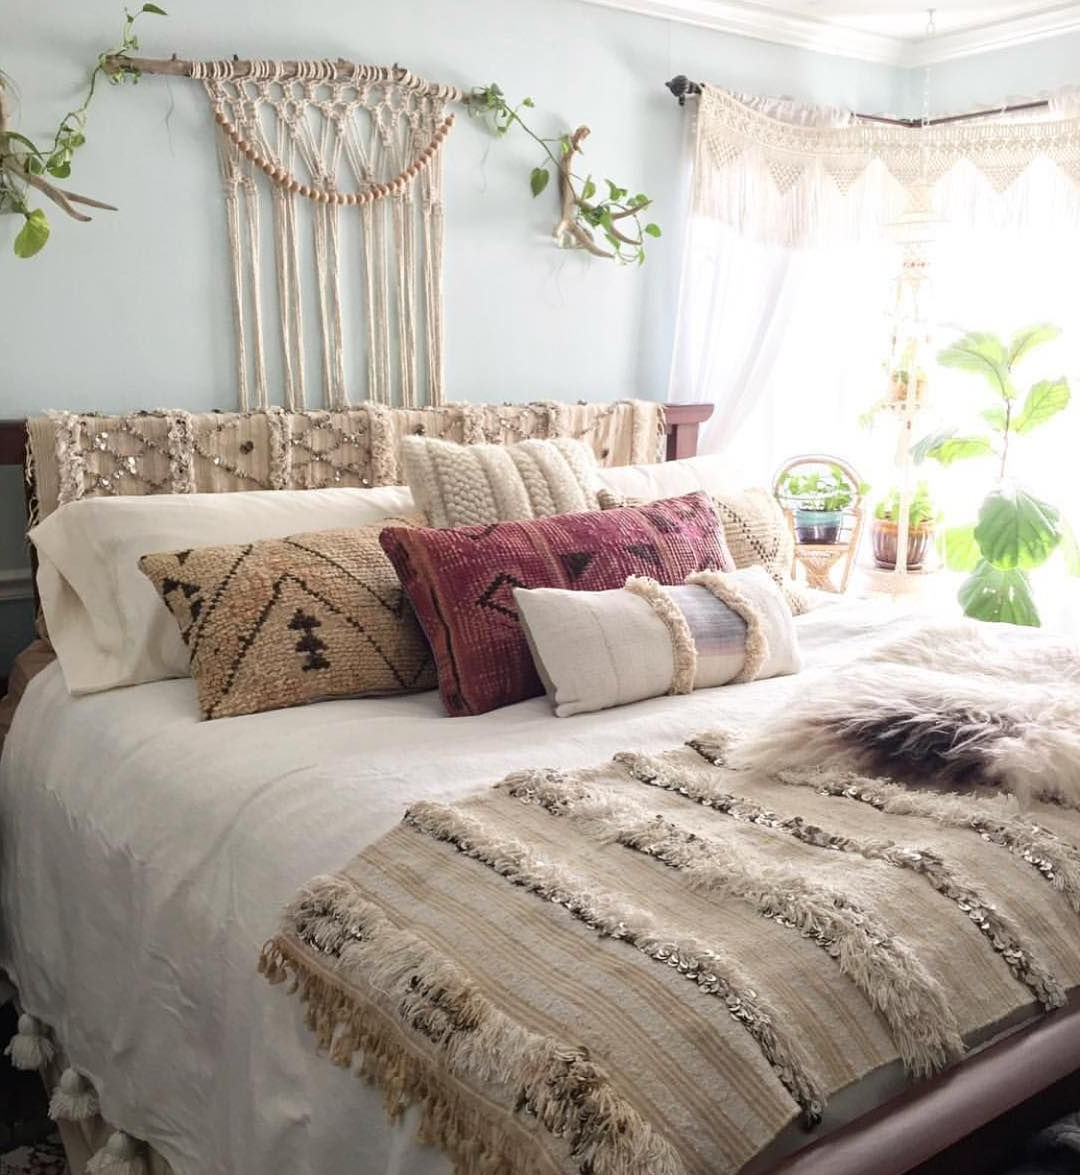 57 Bohemian Bedrooms Thatll Make You Want To Redecorate